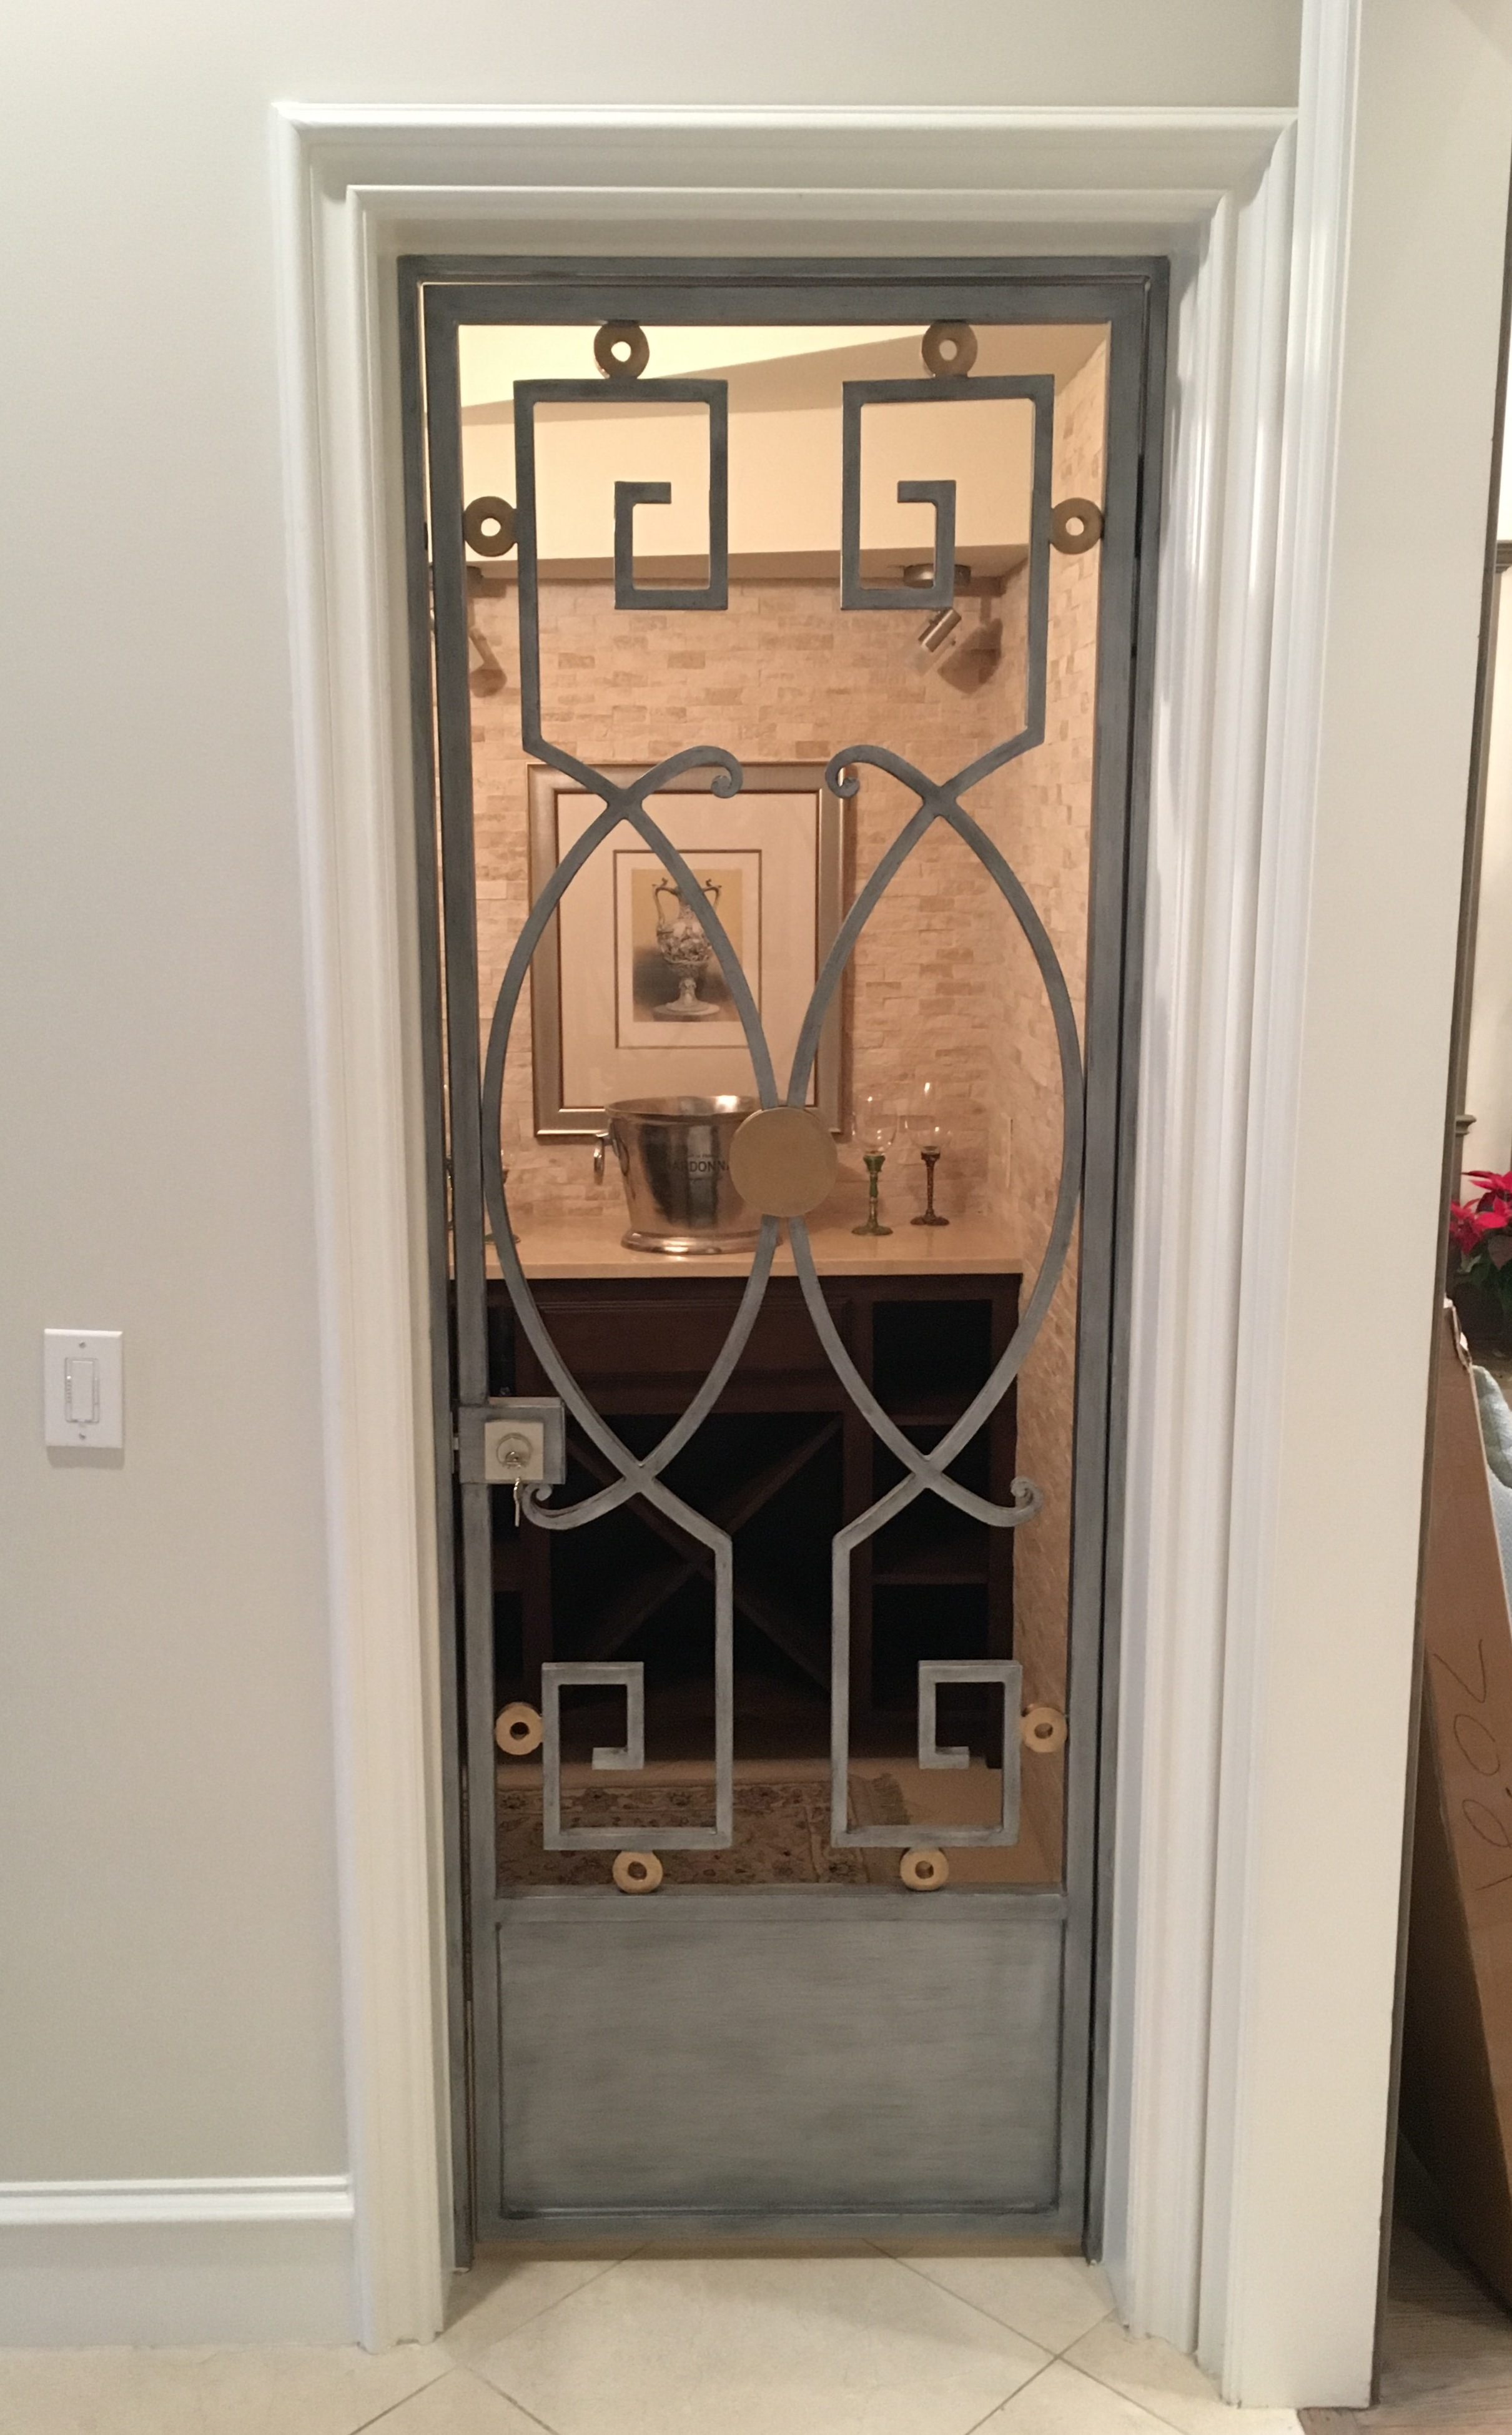 WINE CELLAR DOORS & WINE CELLAR DOORS - D\u0027Hierro Iron Doors Plano TX